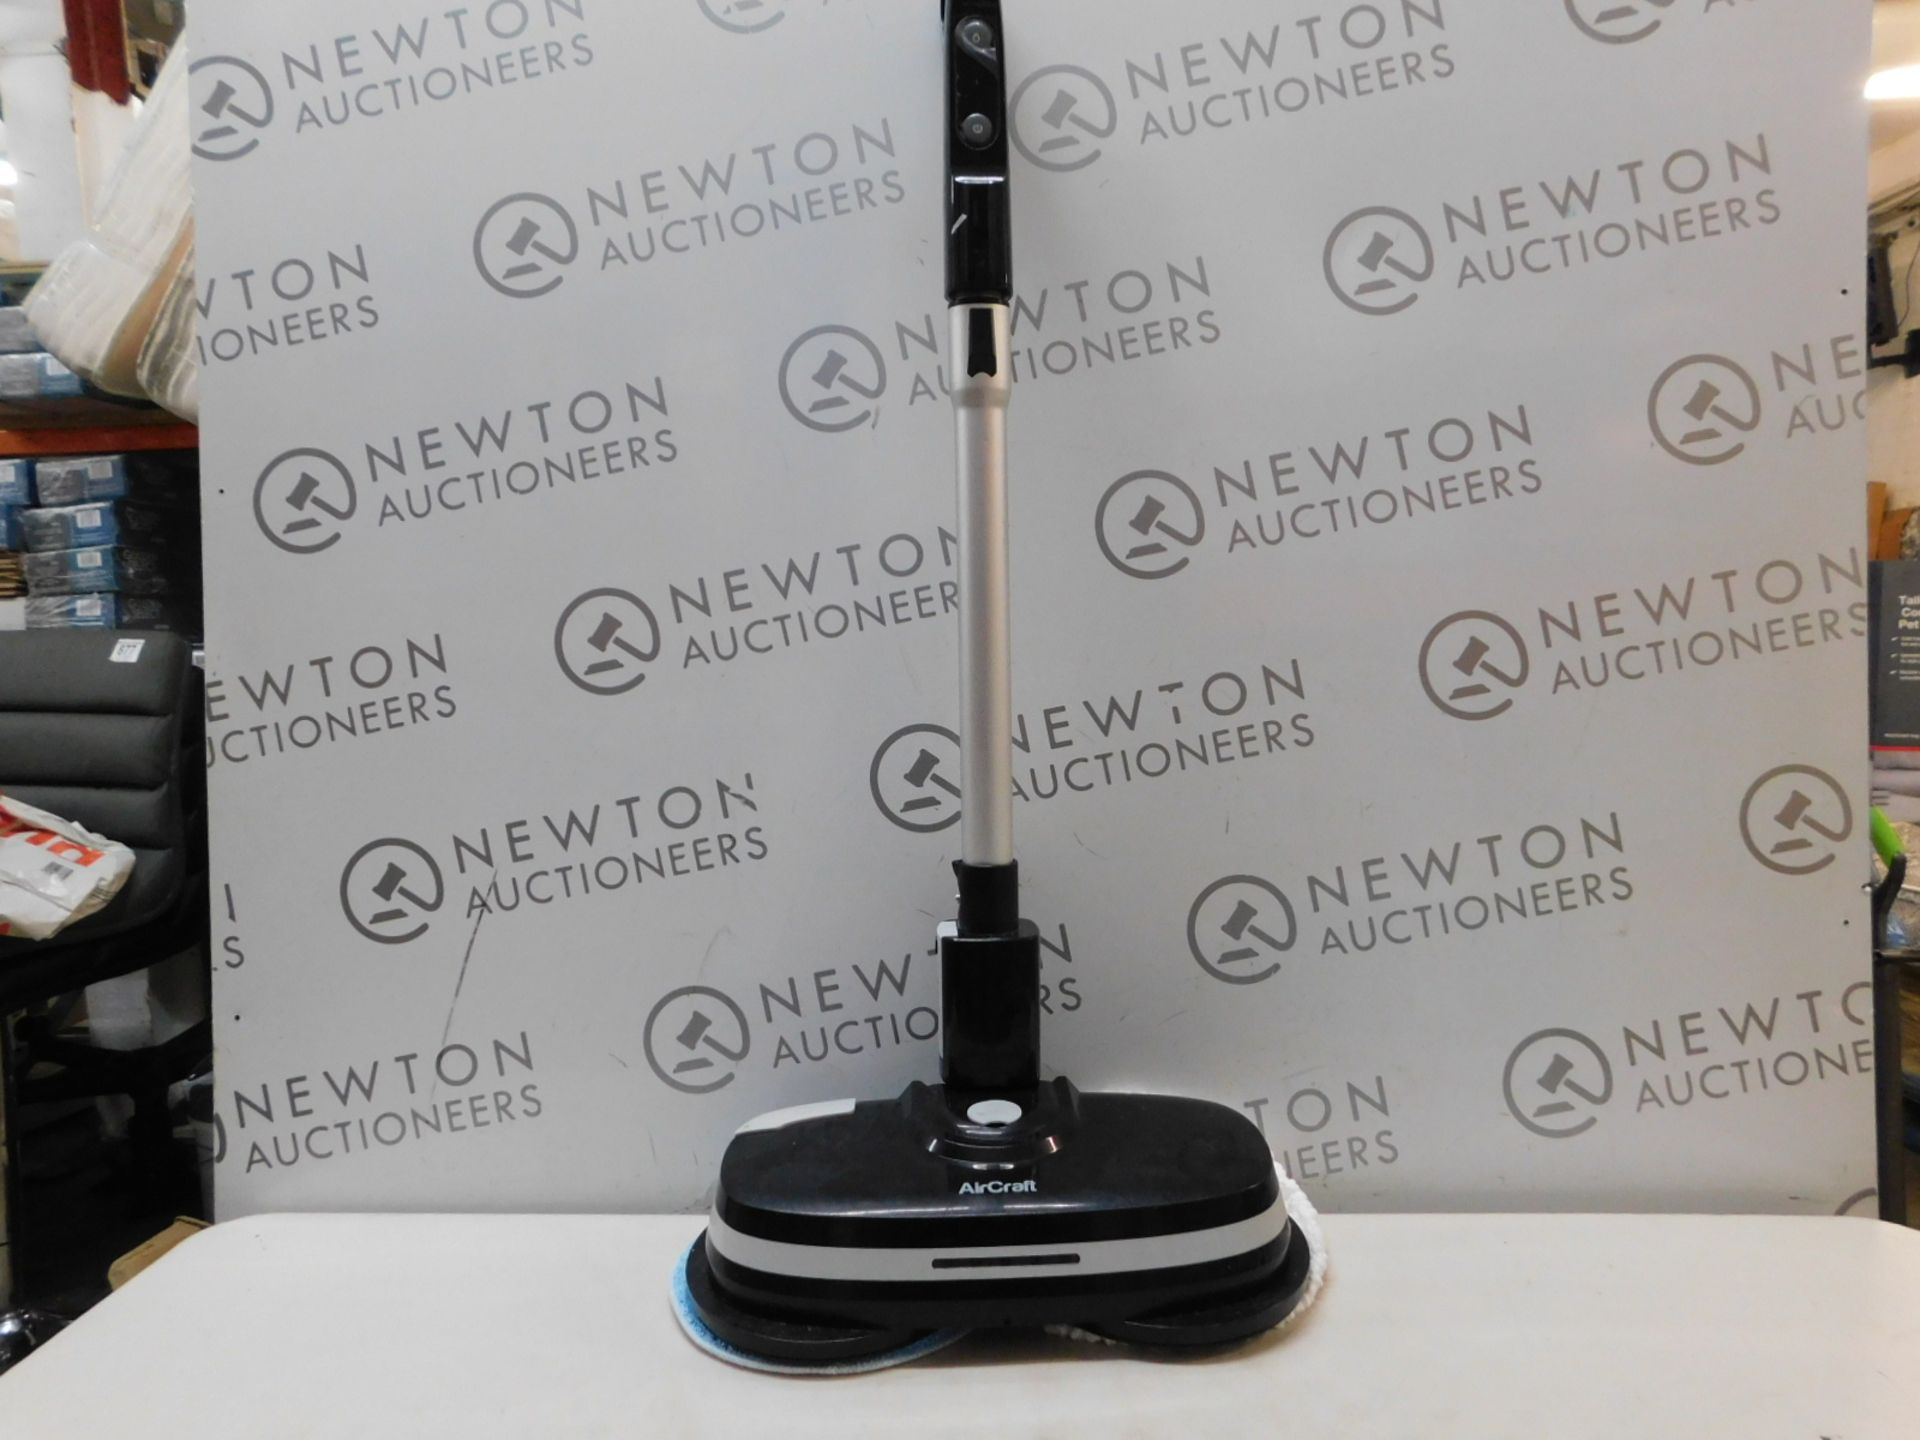 1 AIRCRAFT POWERGLIDE CORDLESS HARD FLOOR CLEANER & POLISHER RRP £199